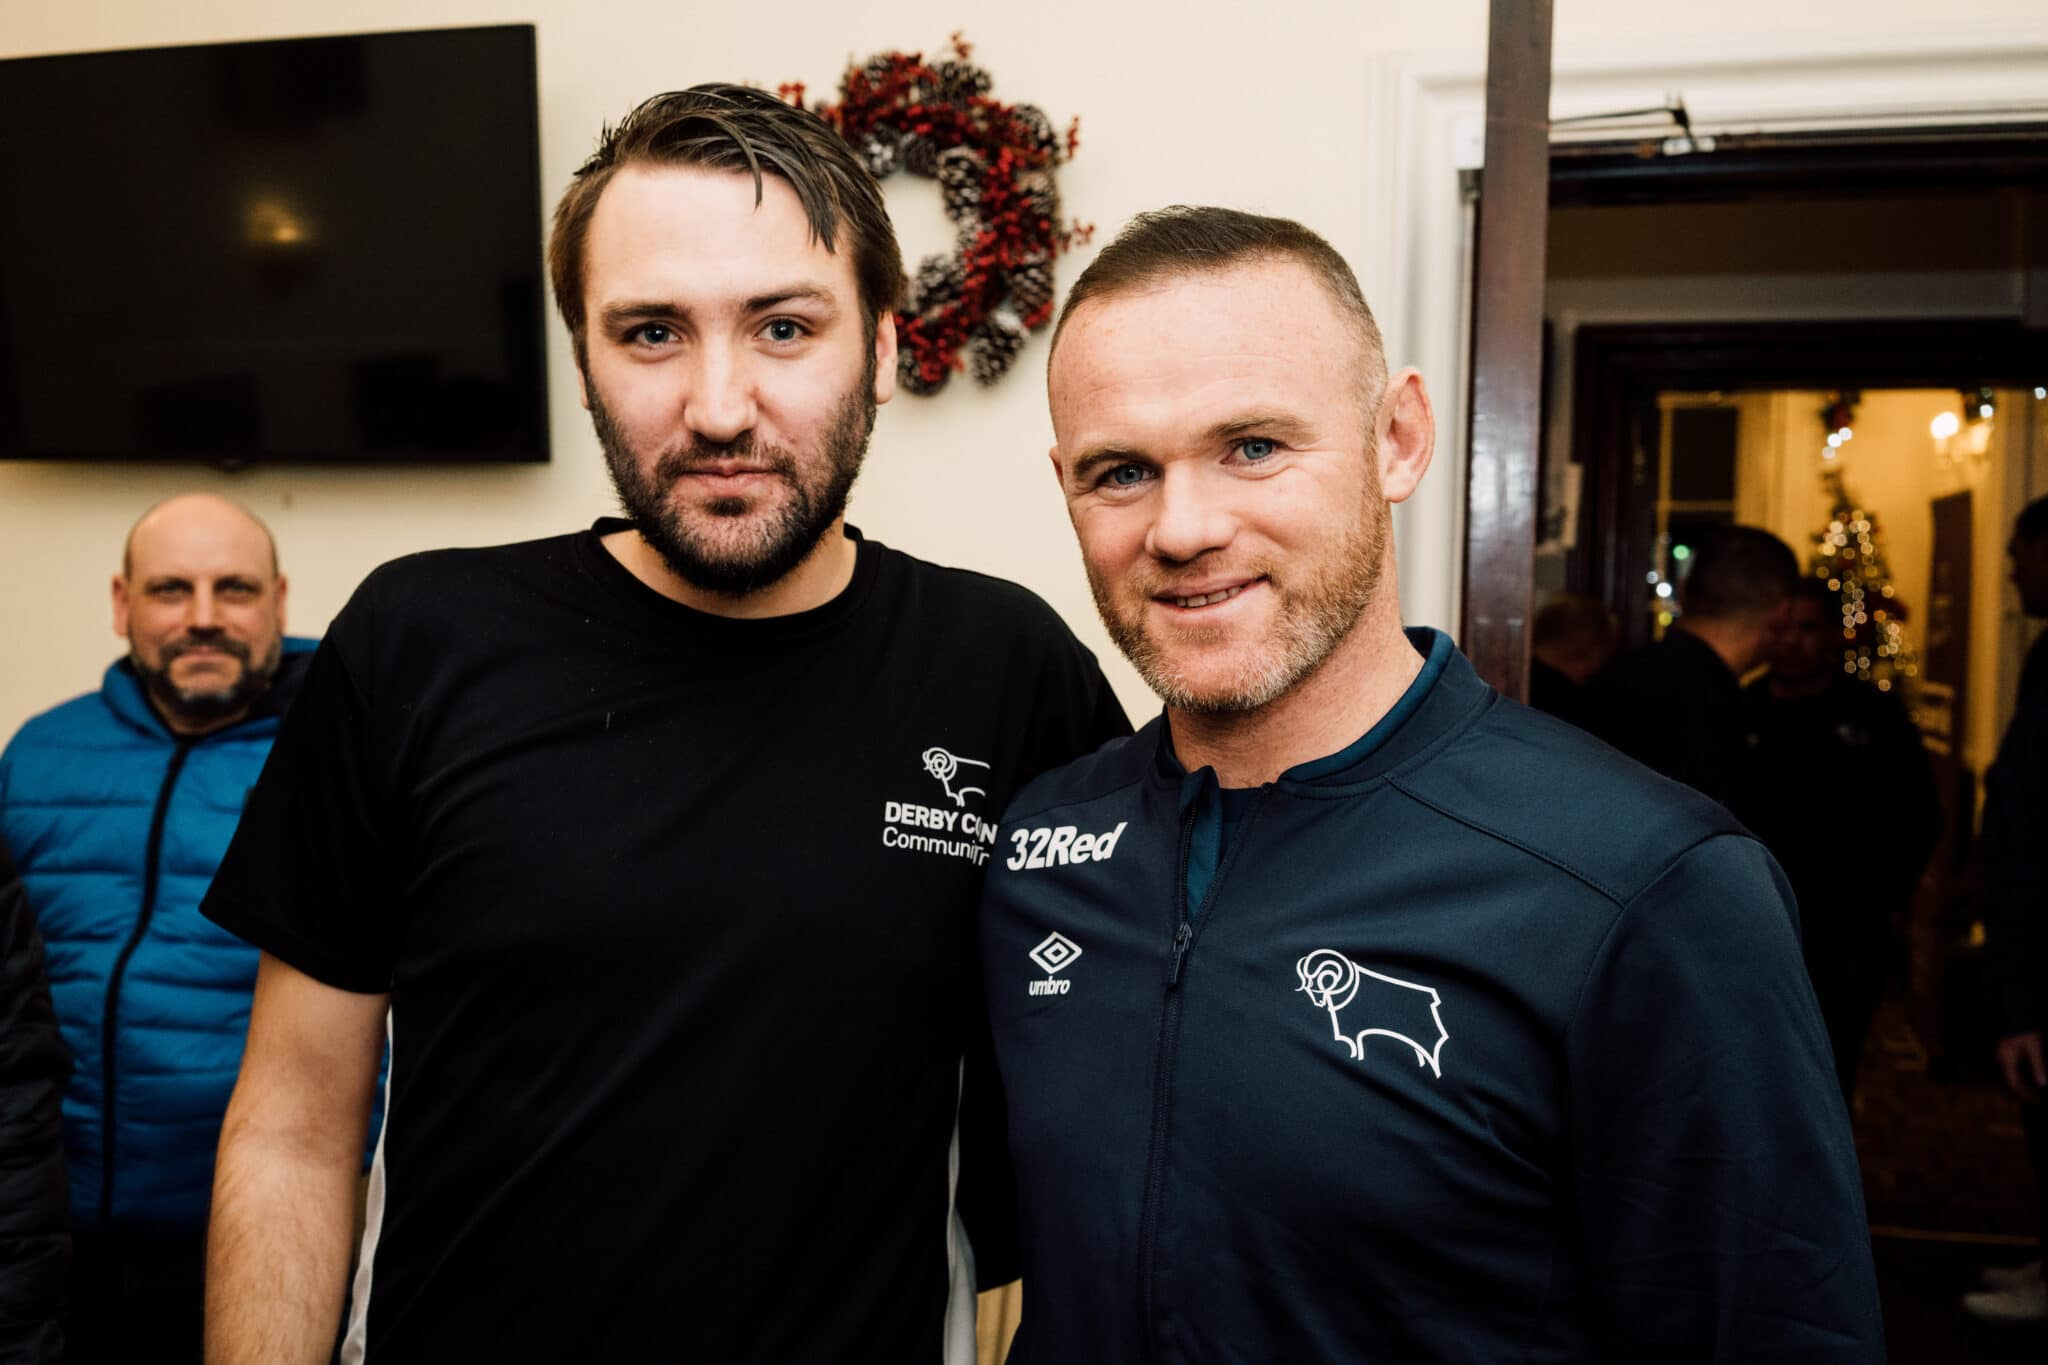 Harley with Derby County's Wayne Rooney on a visit (pre-Covid) to Team Talk